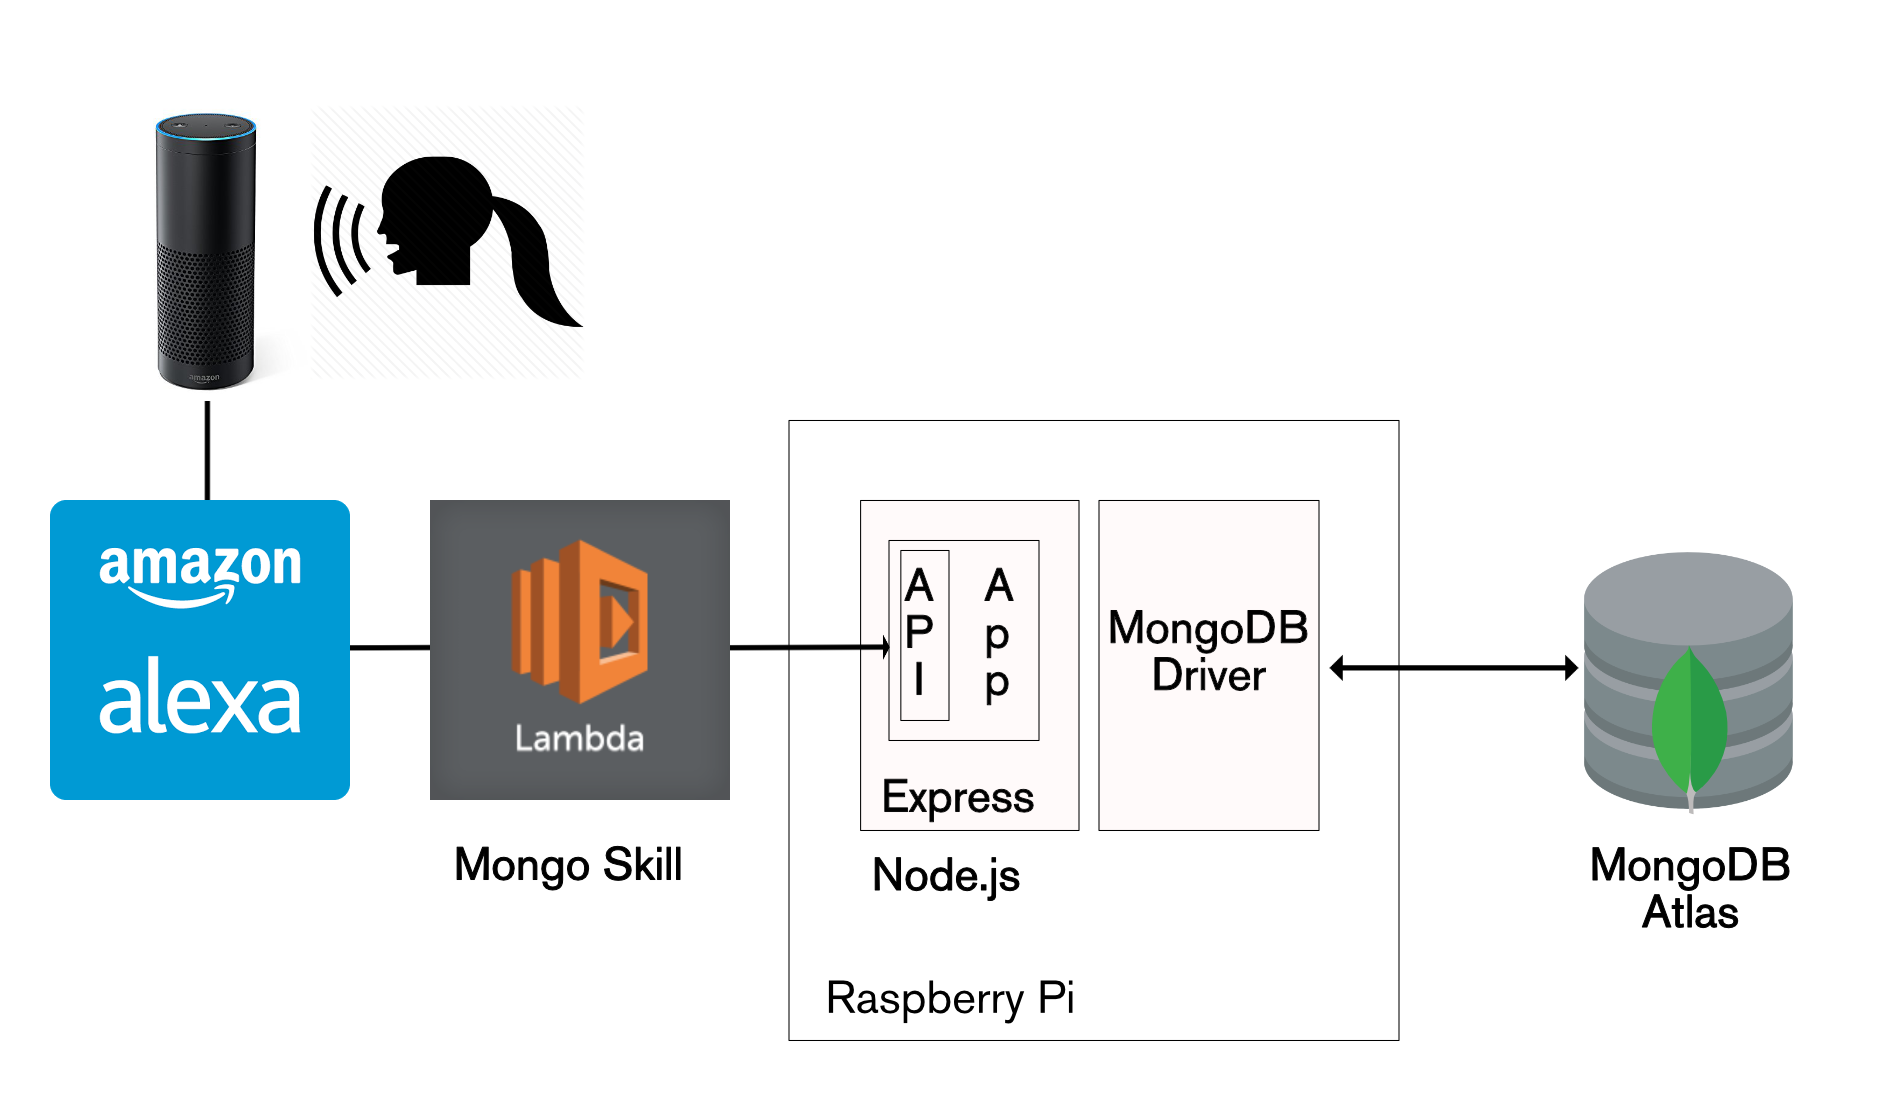 Nodejs andrew morgan on databases stack to have alexa make rest api calls to mongopop ccuart Choice Image